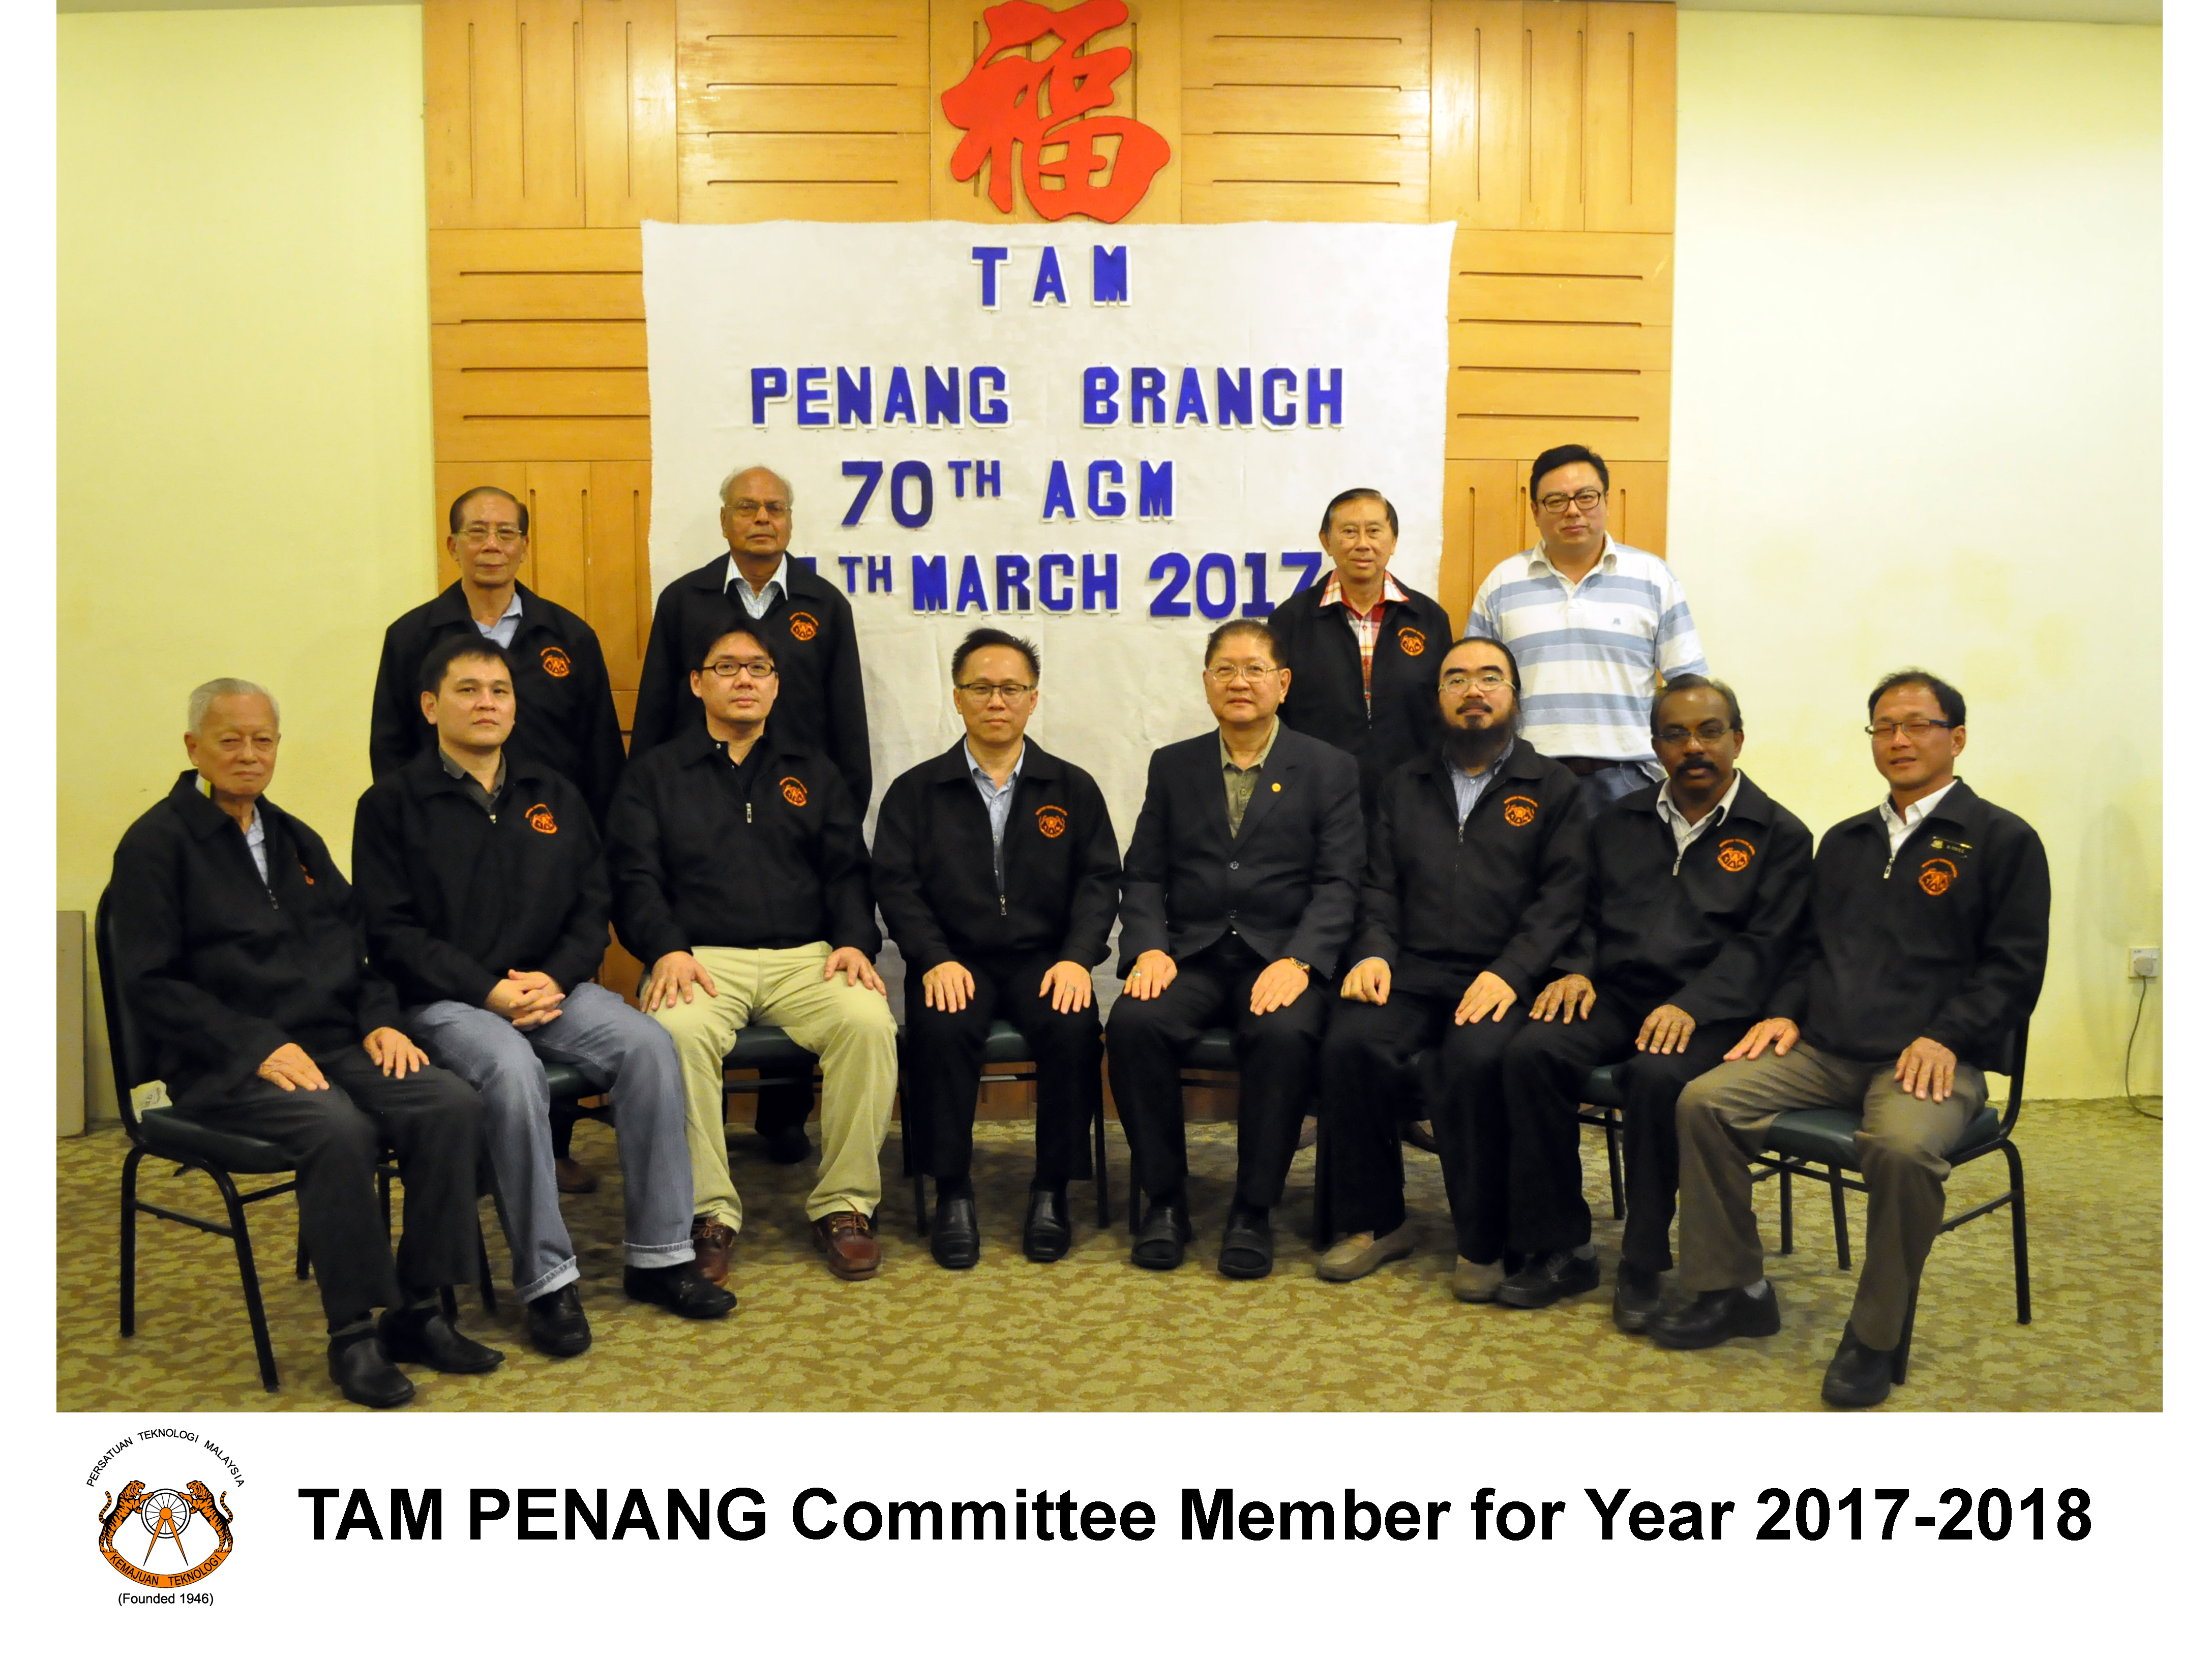 TAM Committee 2017-2018 6x8 copy